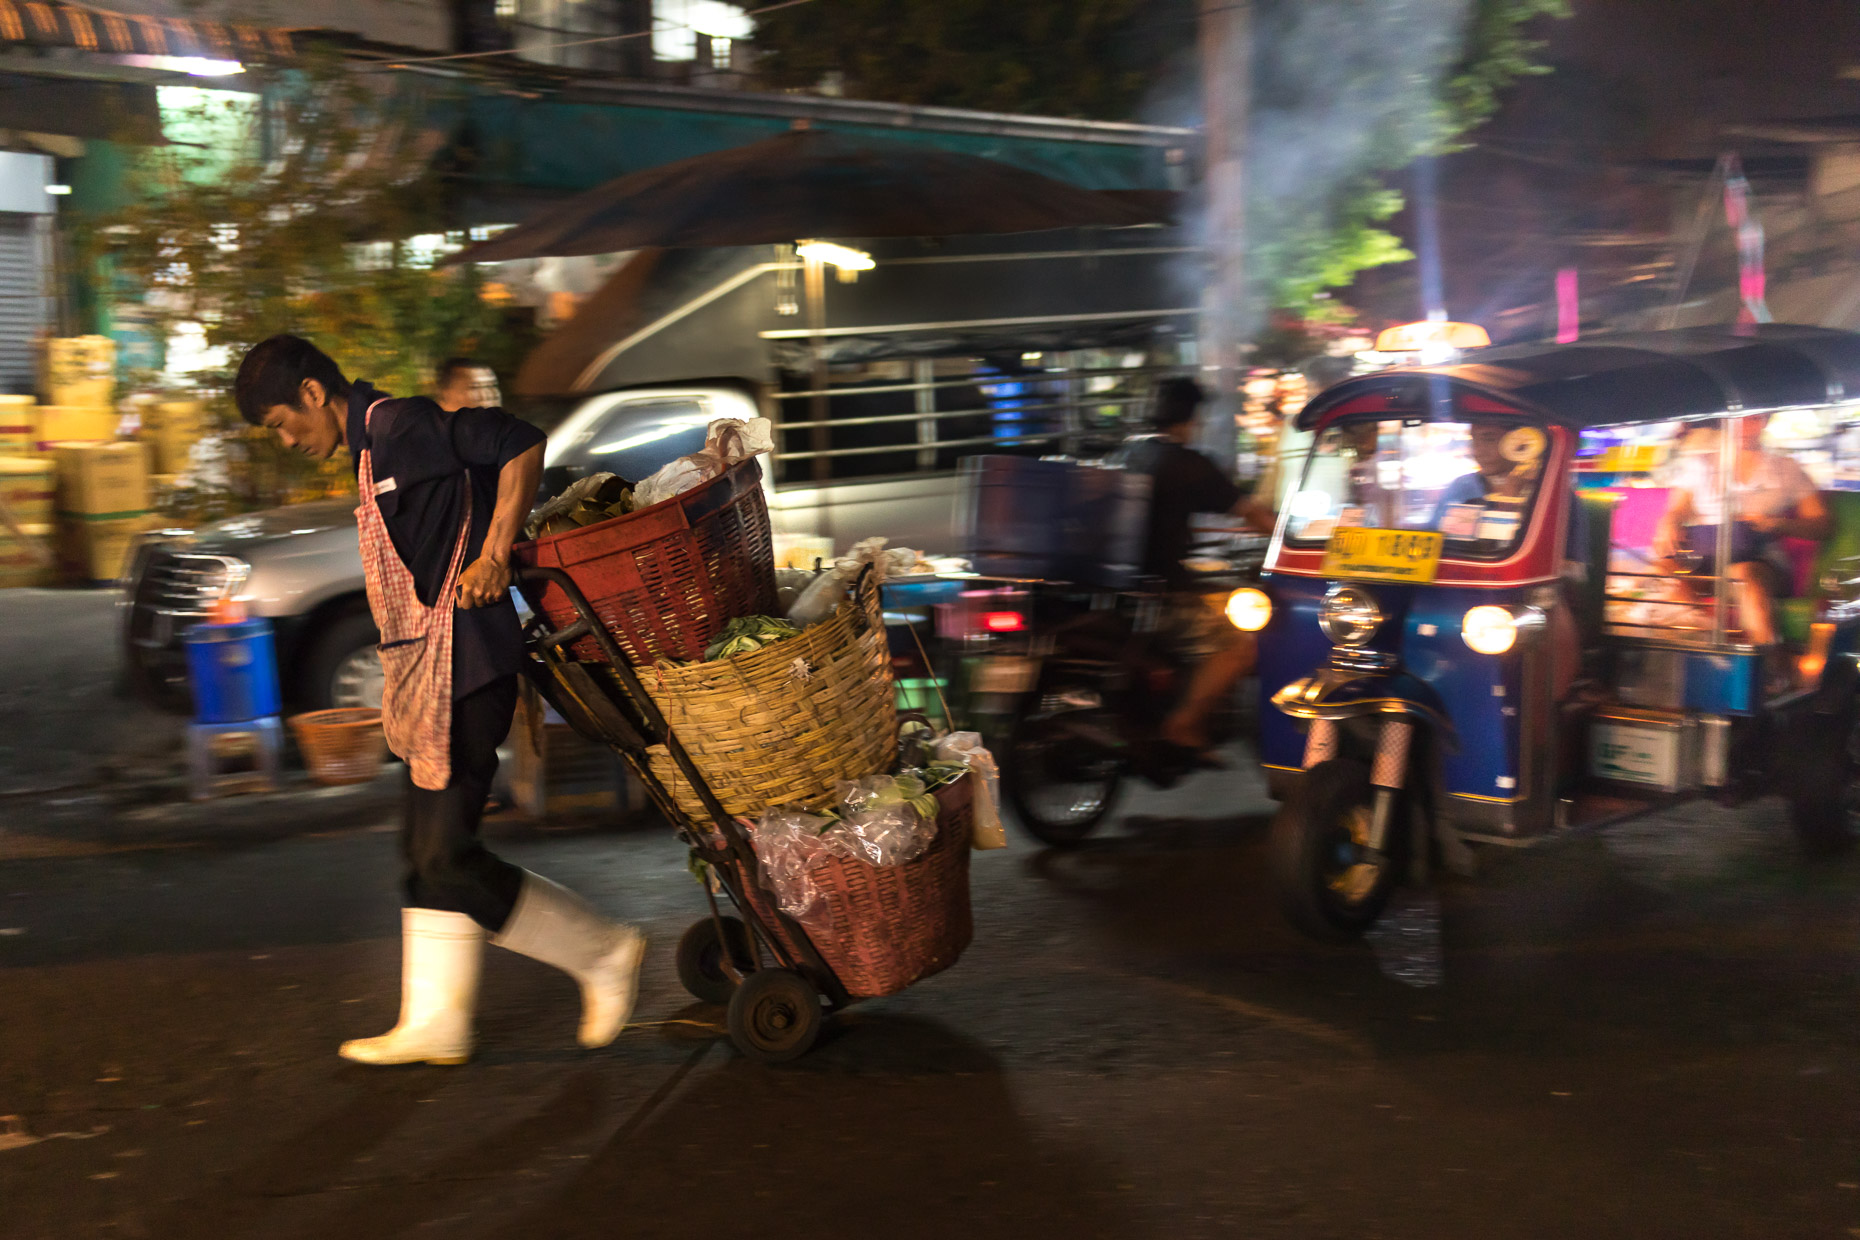 Early morning activity at an open air market in Thailand